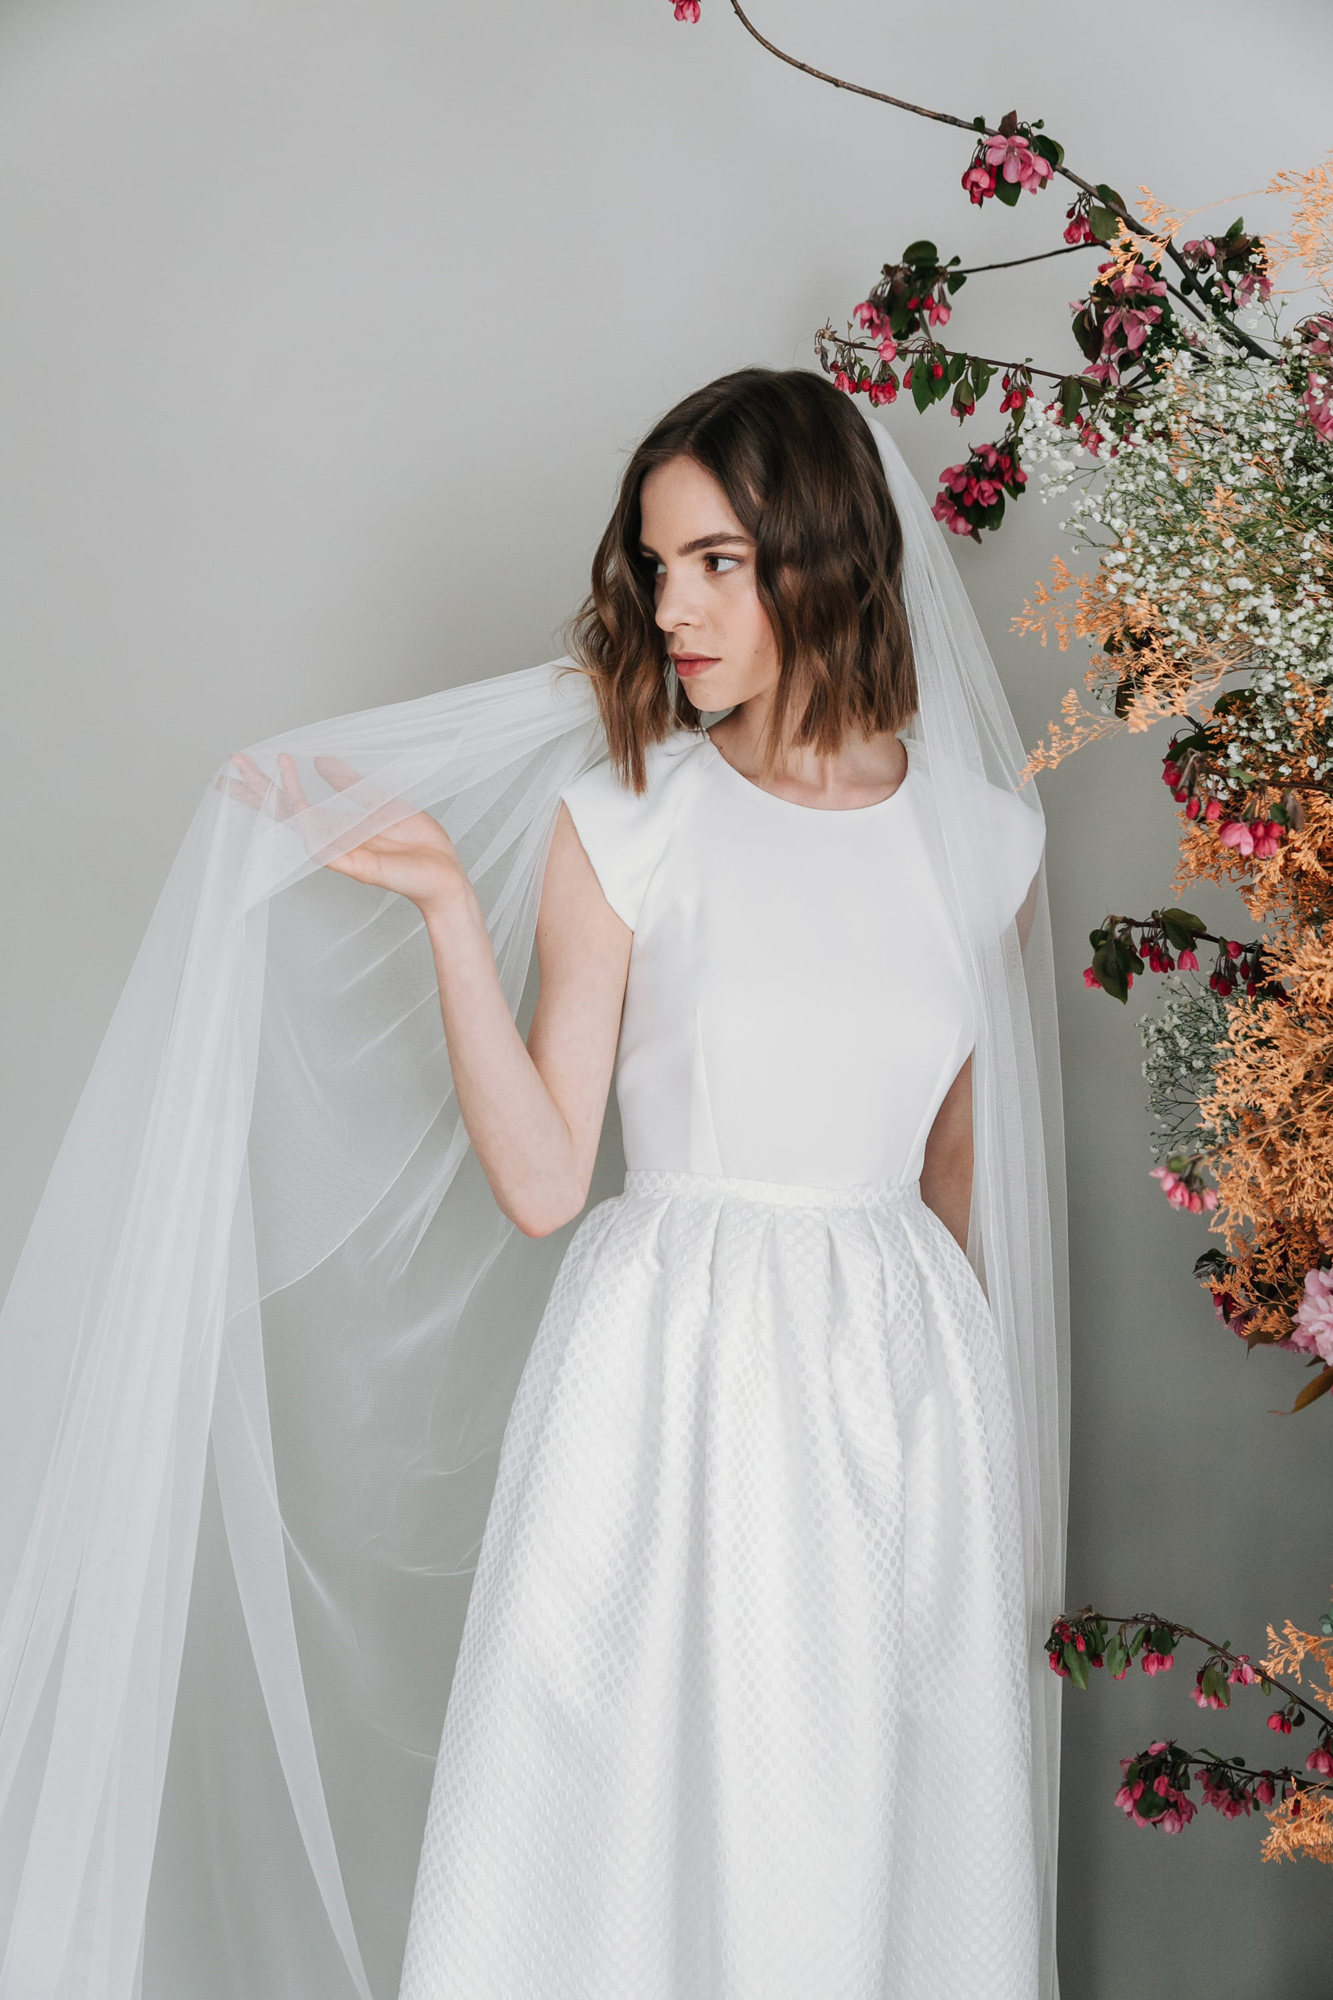 Kate-Beaumont-Sheffield-Picot-Edge-Silky-Tulle-Ethereal-Veil-3.jpg